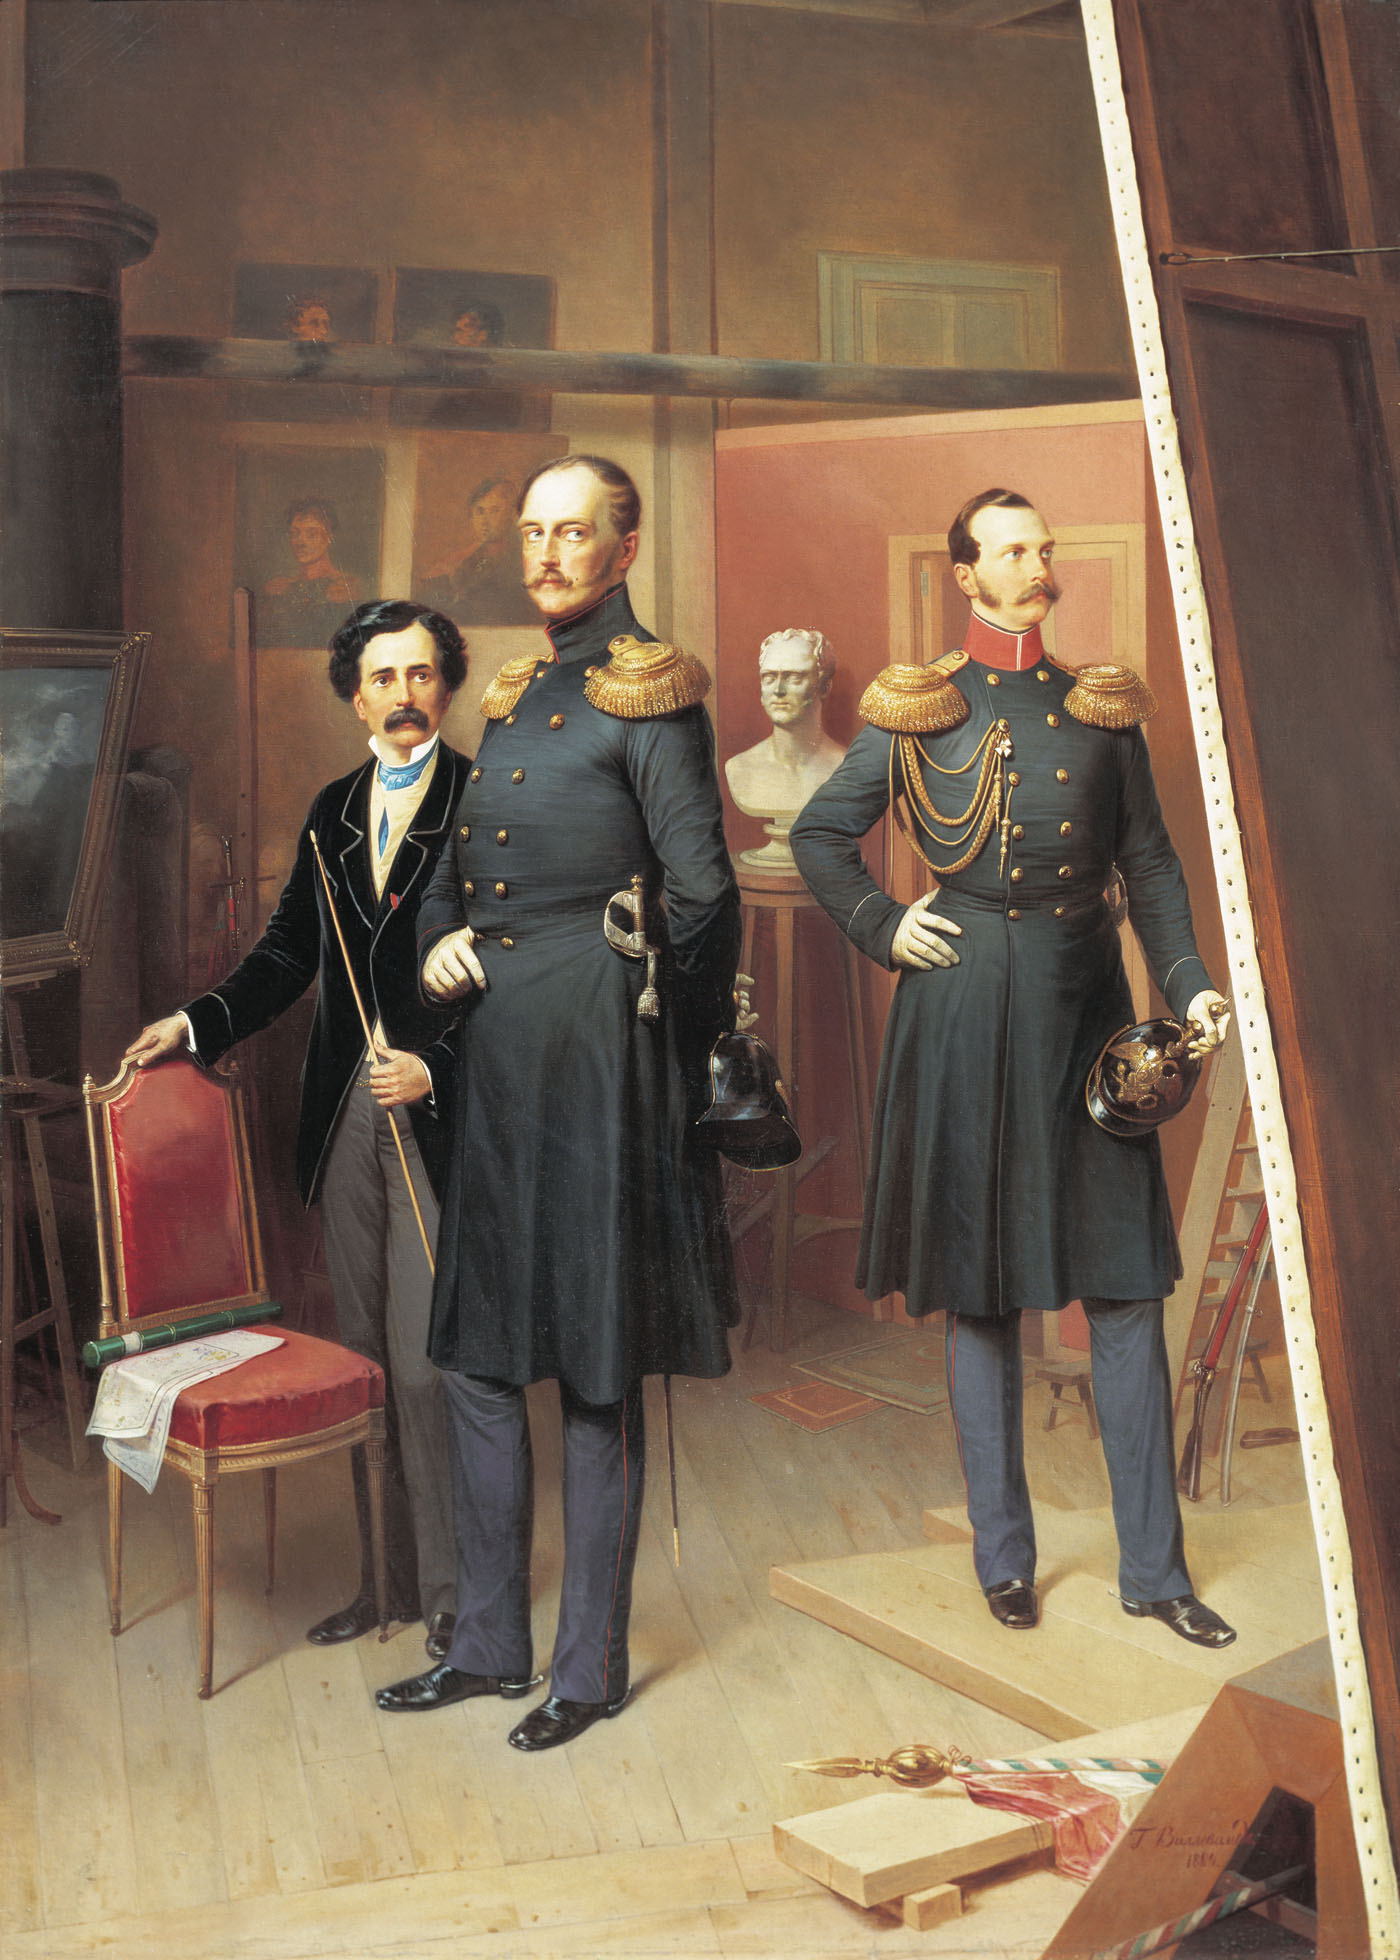 https://i0.wp.com/upload.wikimedia.org/wikipedia/commons/e/ed/Bogdan_Villevalde%2C_Nicholas_I_of_Russia_and_Alexander_Nikolayevich_in_1854.jpg